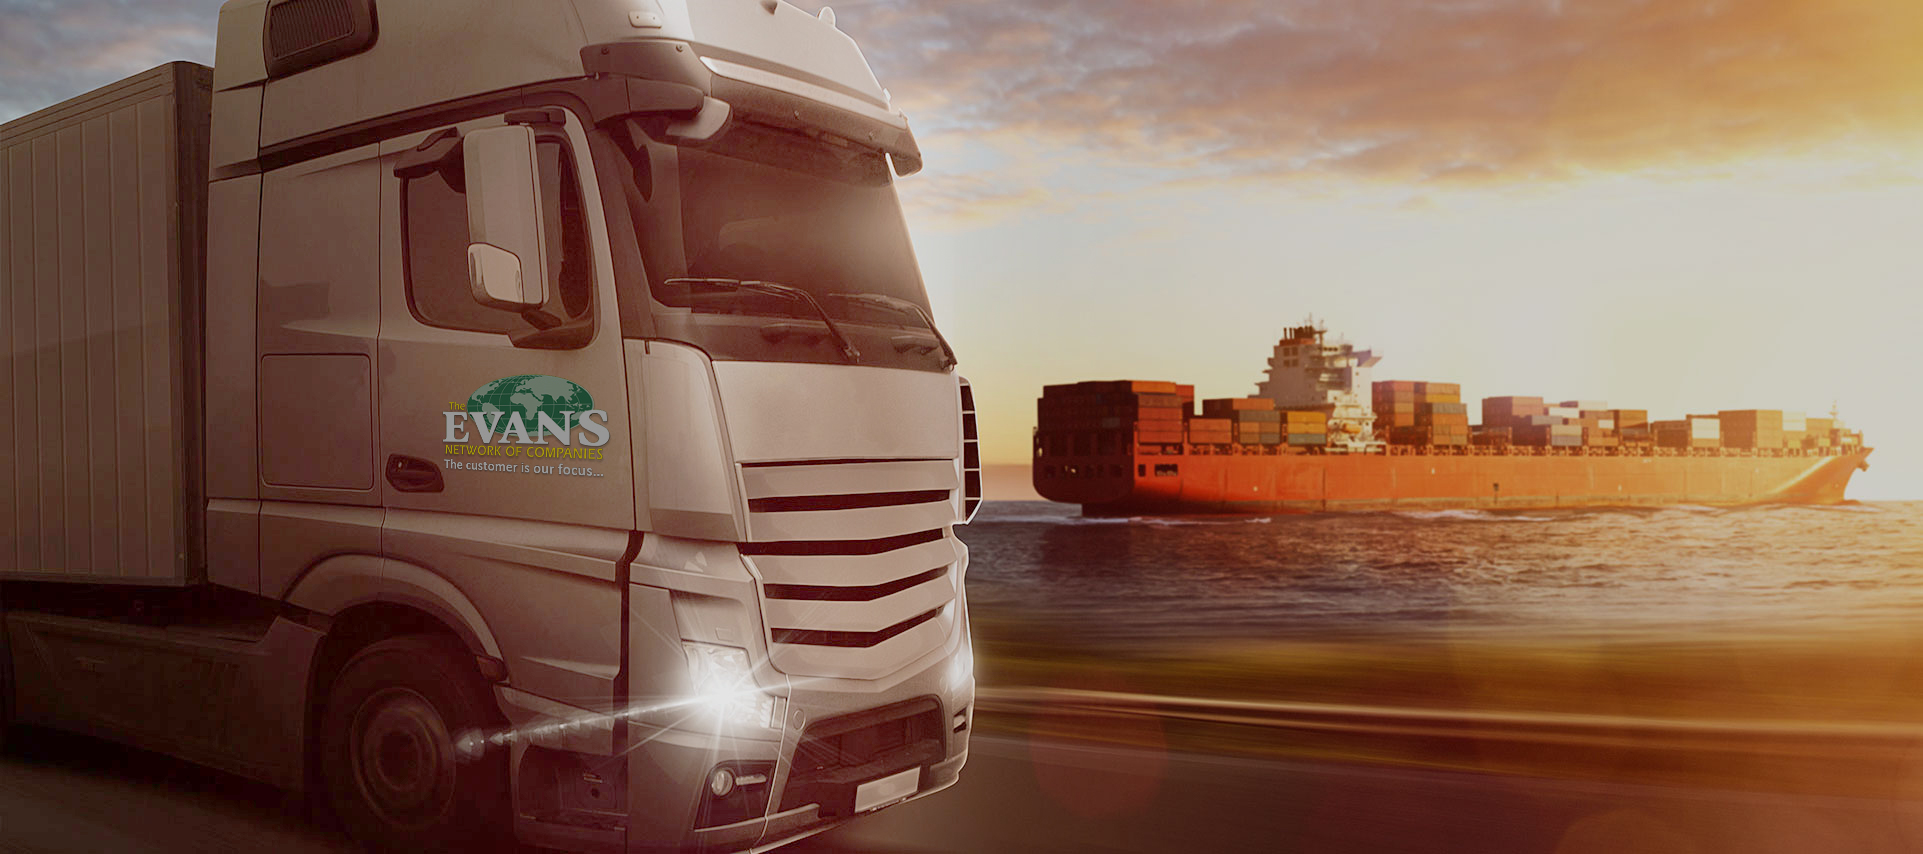 Evans Delivery Network of Companies - Ship Evans